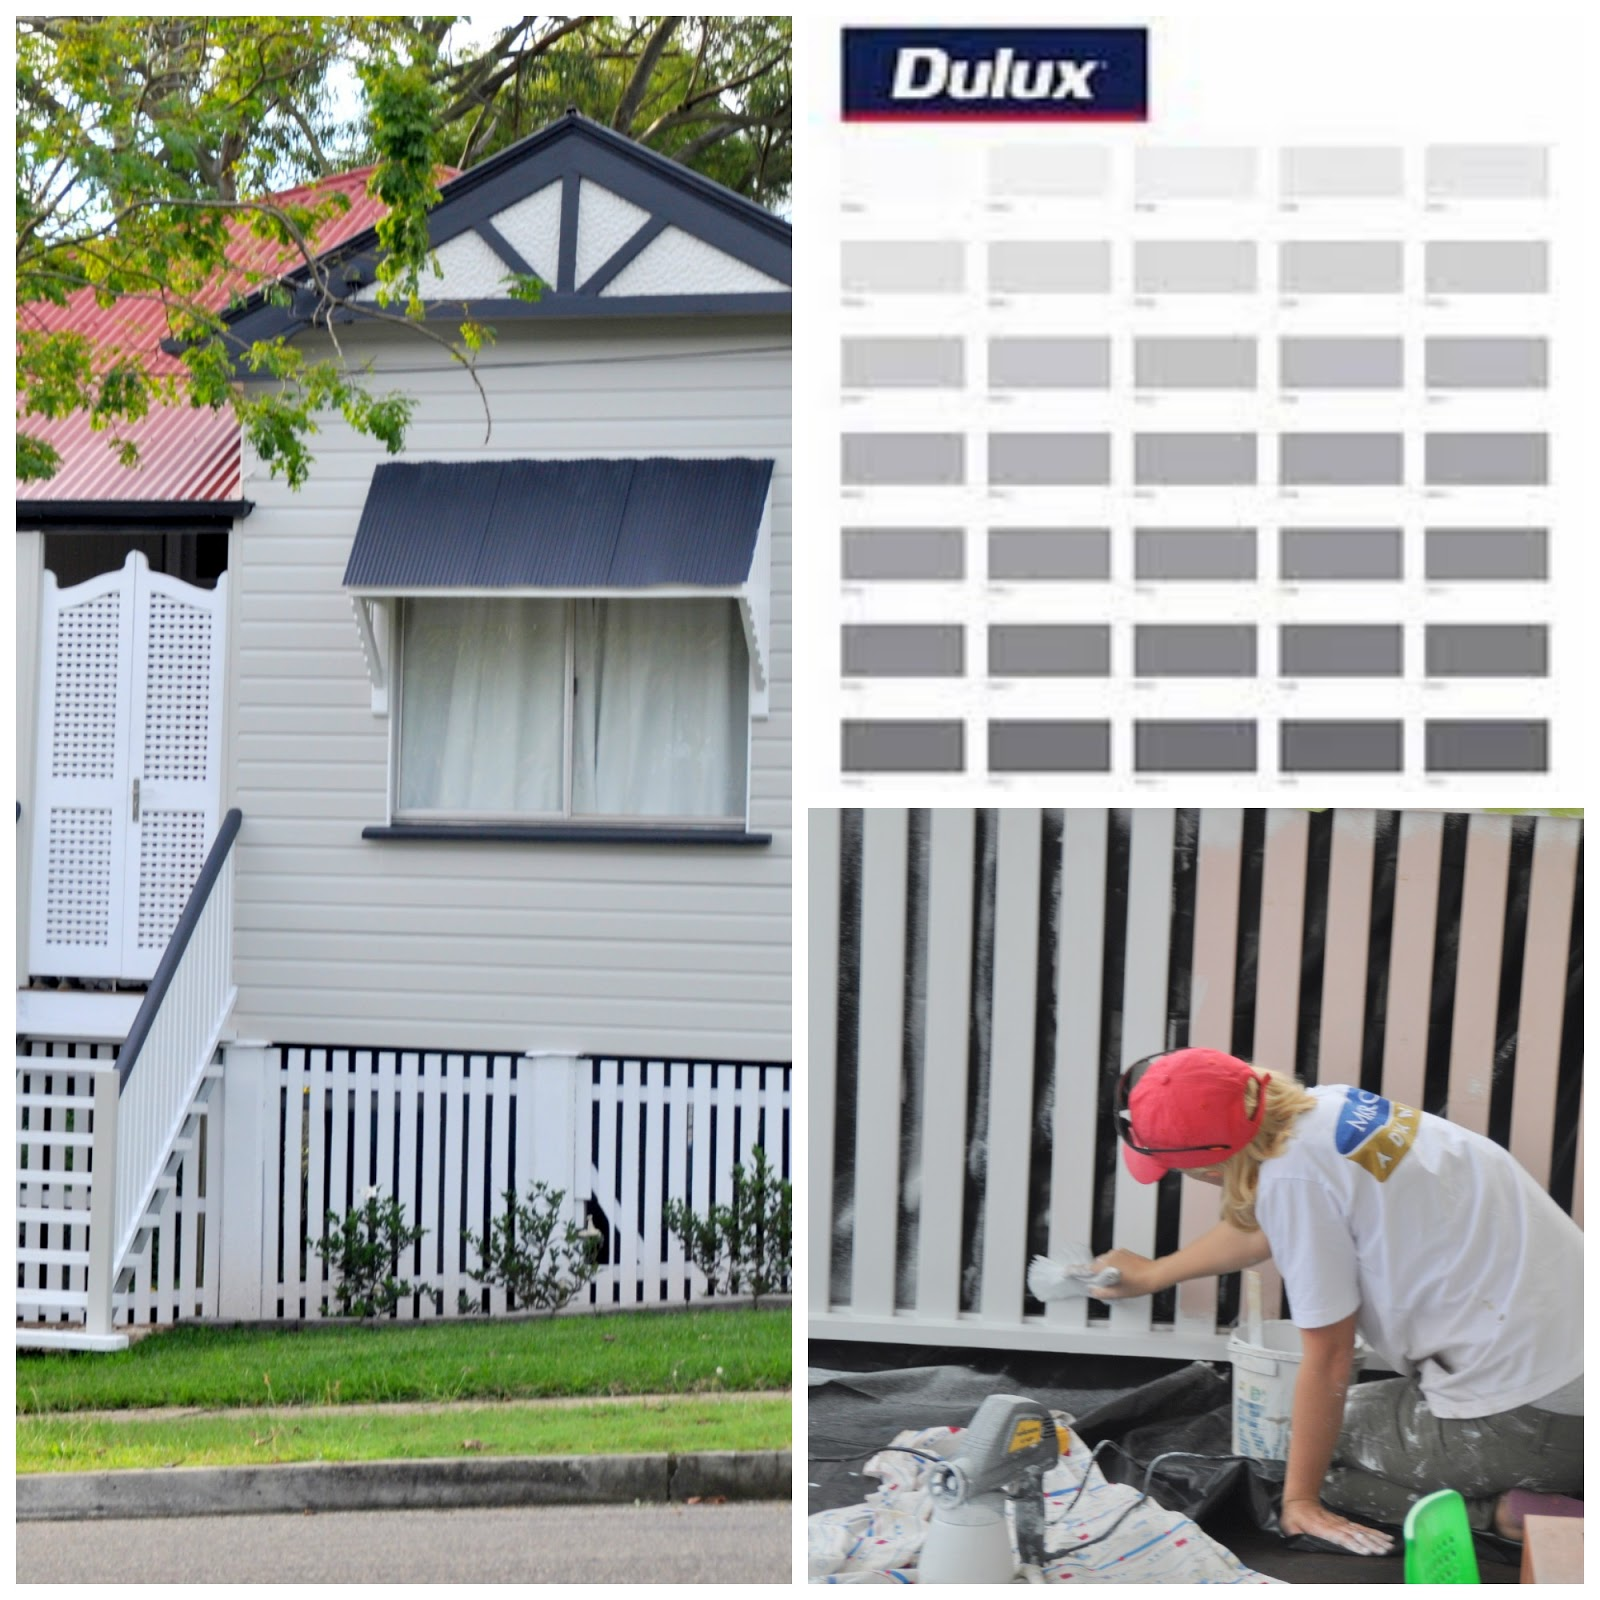 Project renov8 - Dulux exterior paint colour schemes property ...